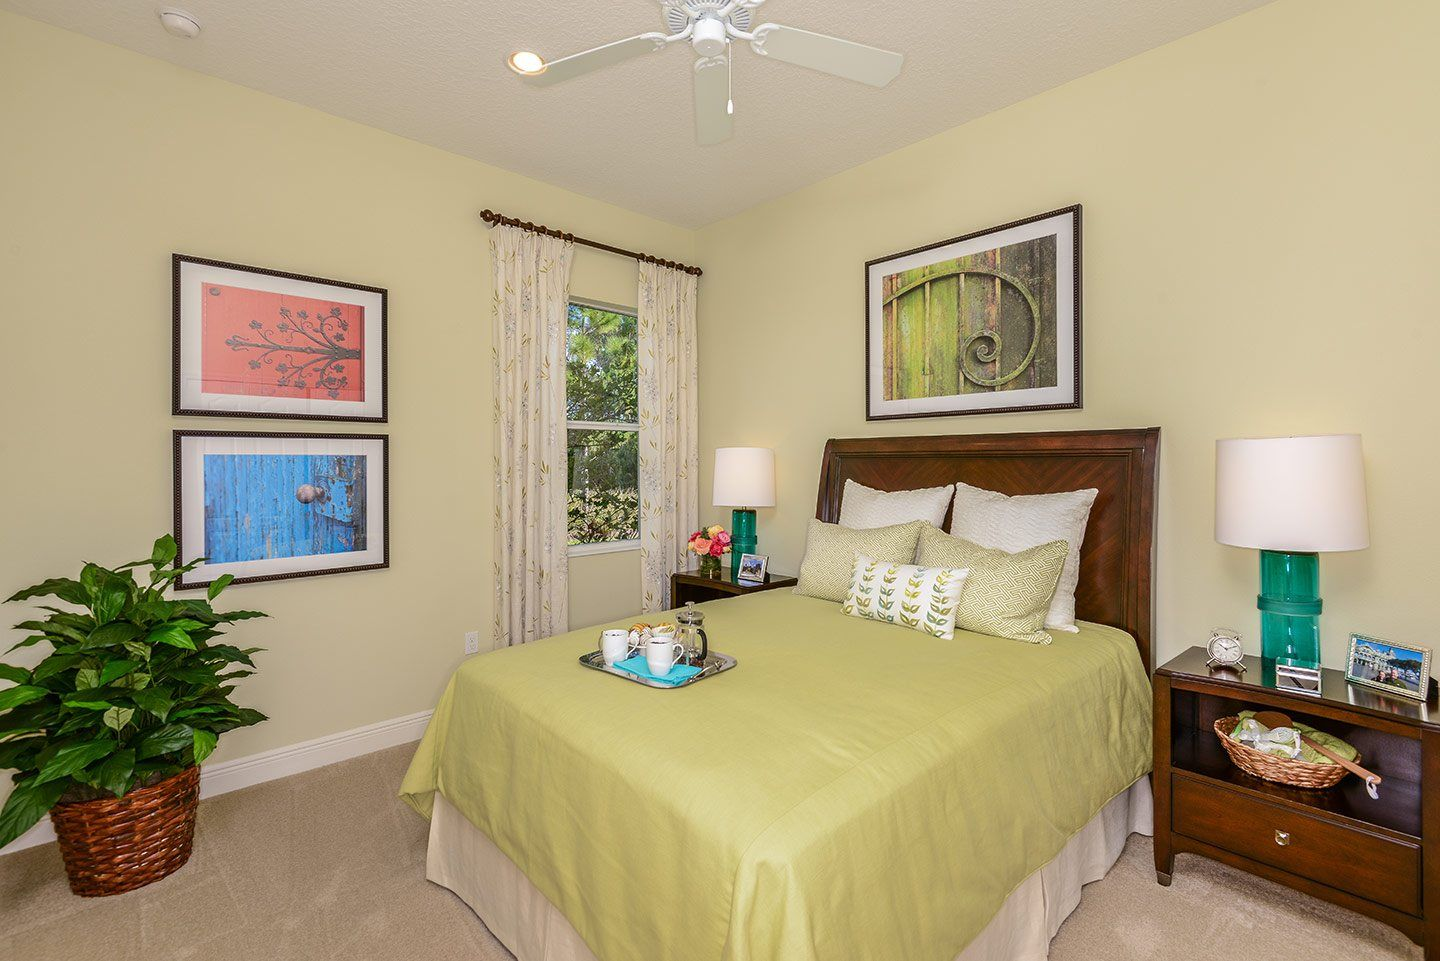 Bedroom featured in the Endless Summer 3 By Neal Communities in Sarasota-Bradenton, FL